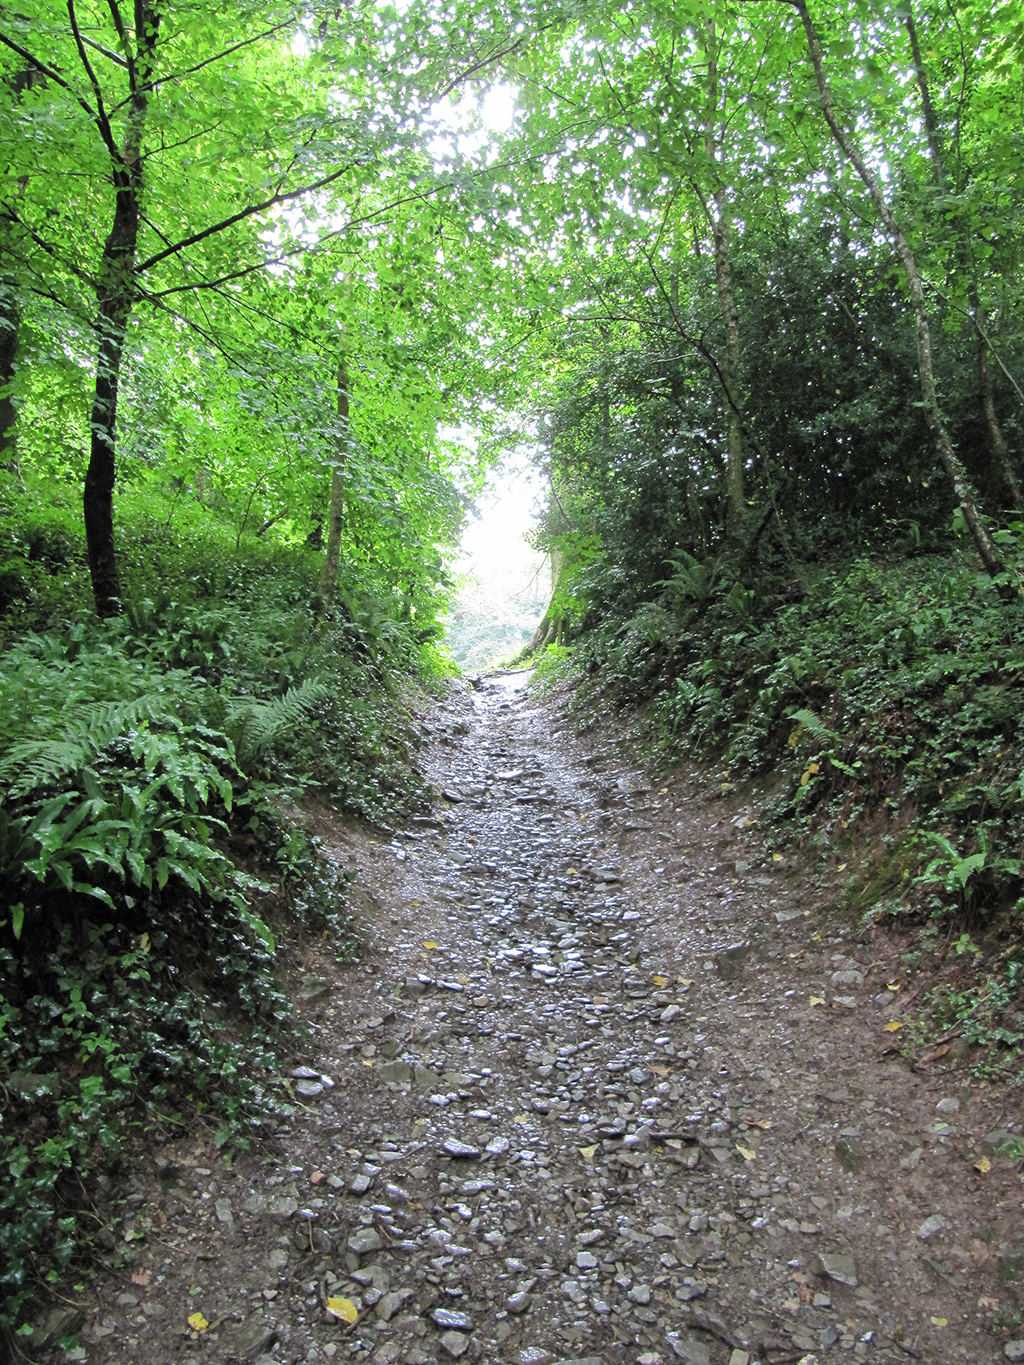 Footpath leading down into the valley.